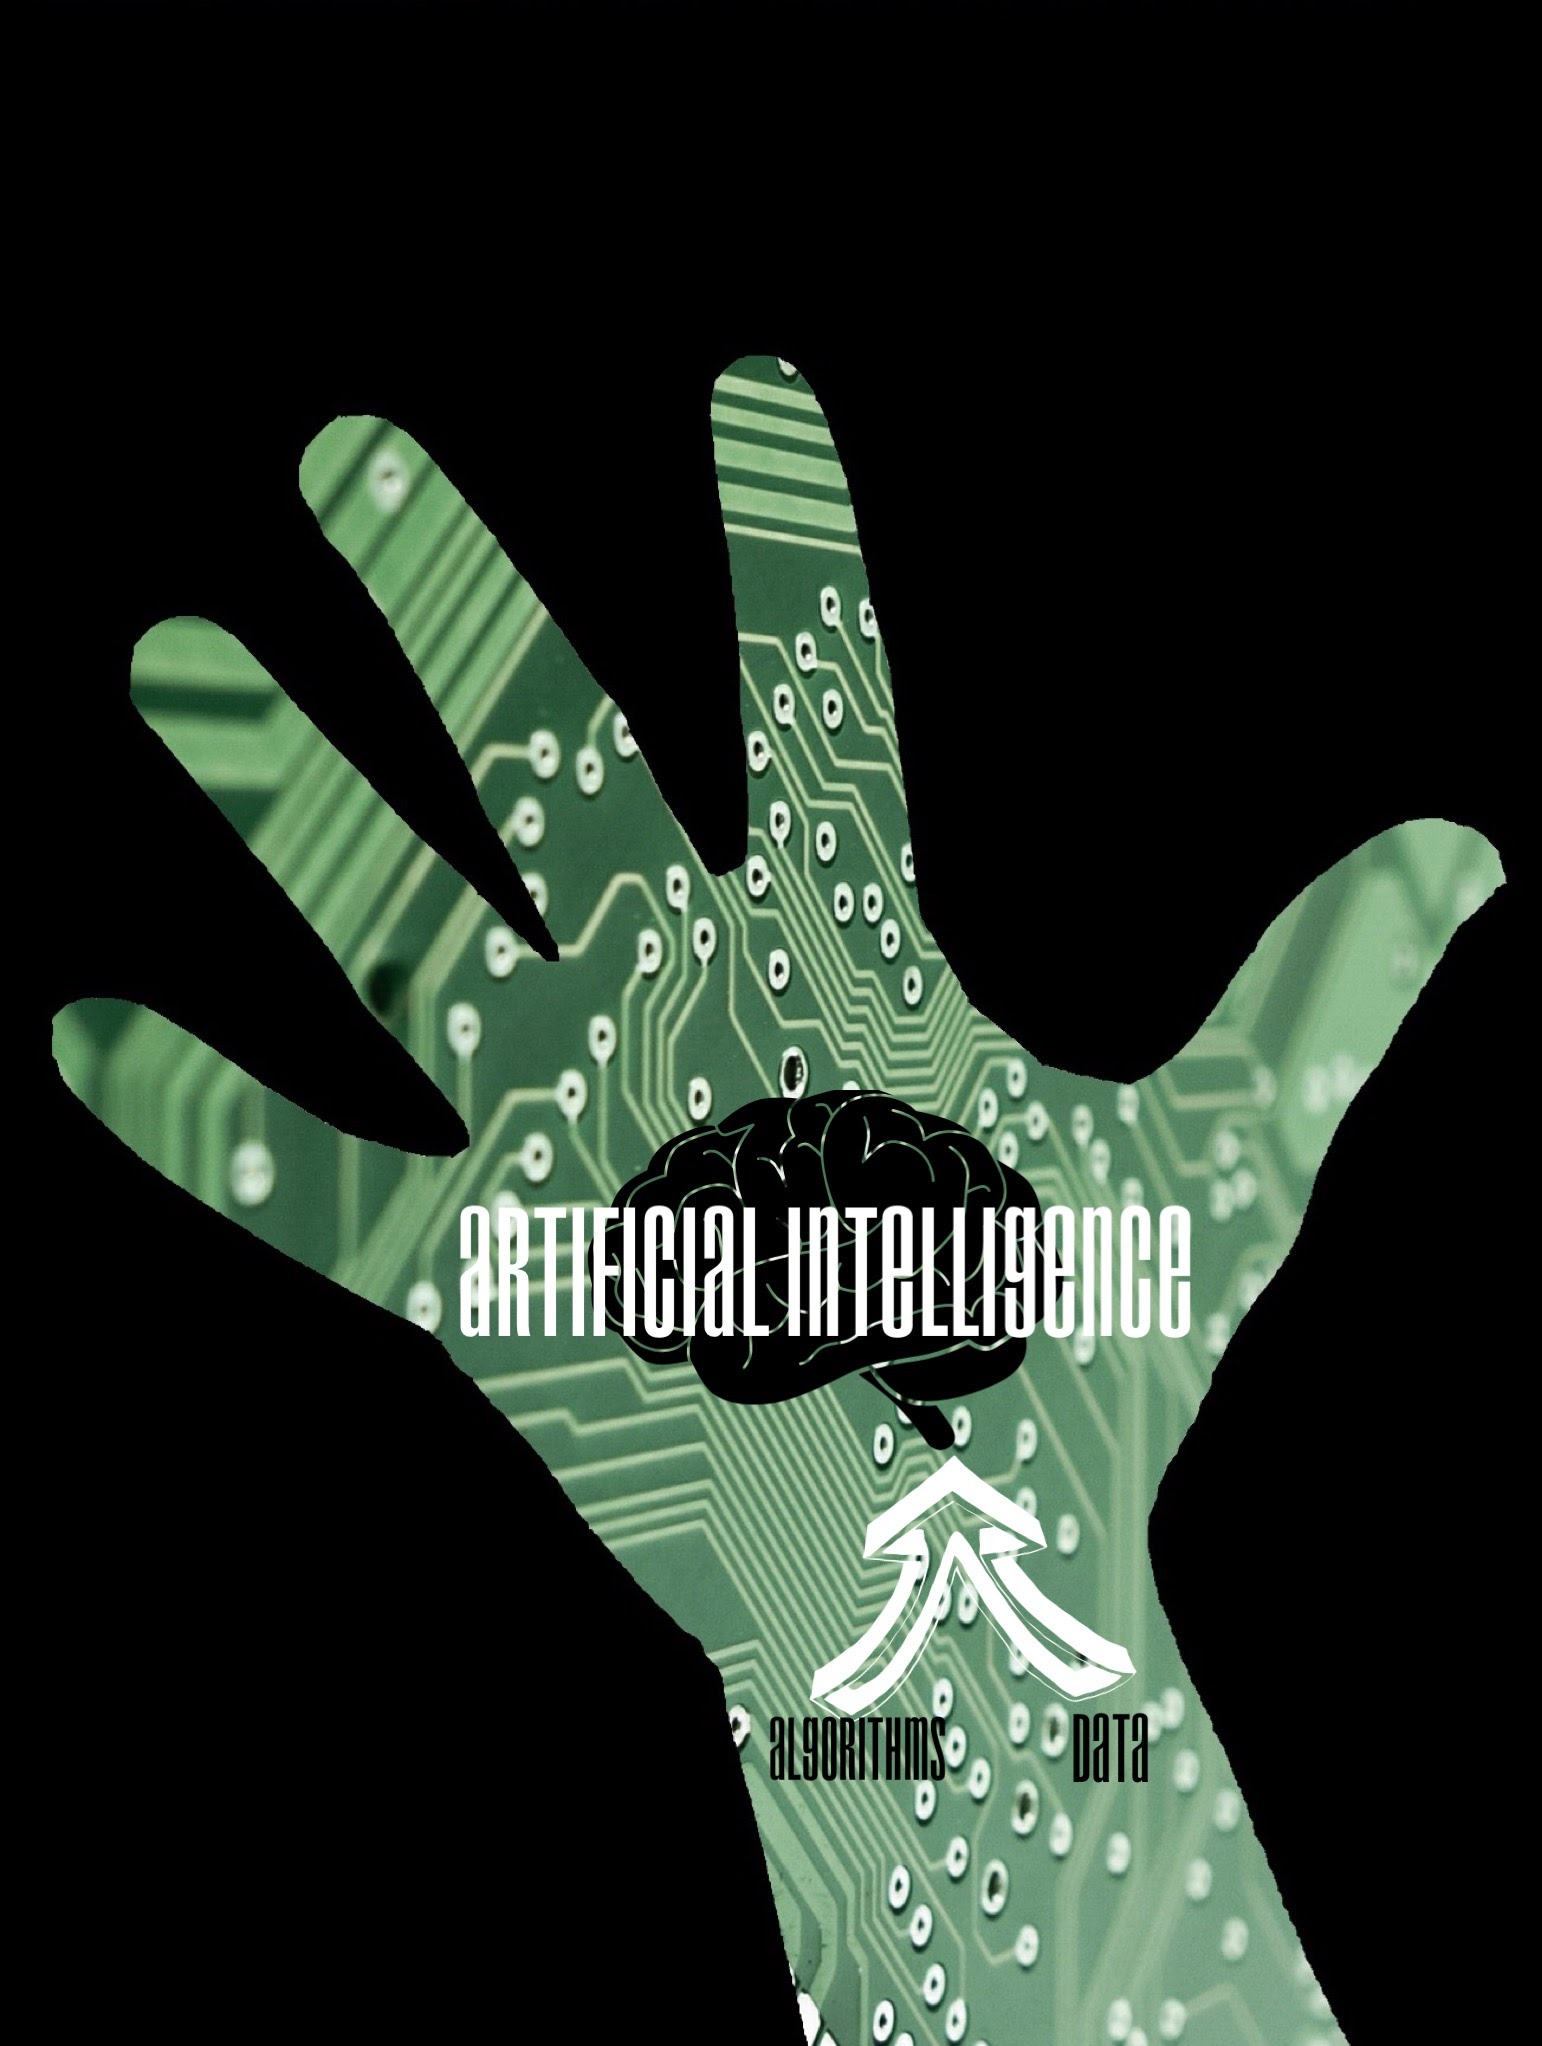 Artificial Intelligence - Algo + Data